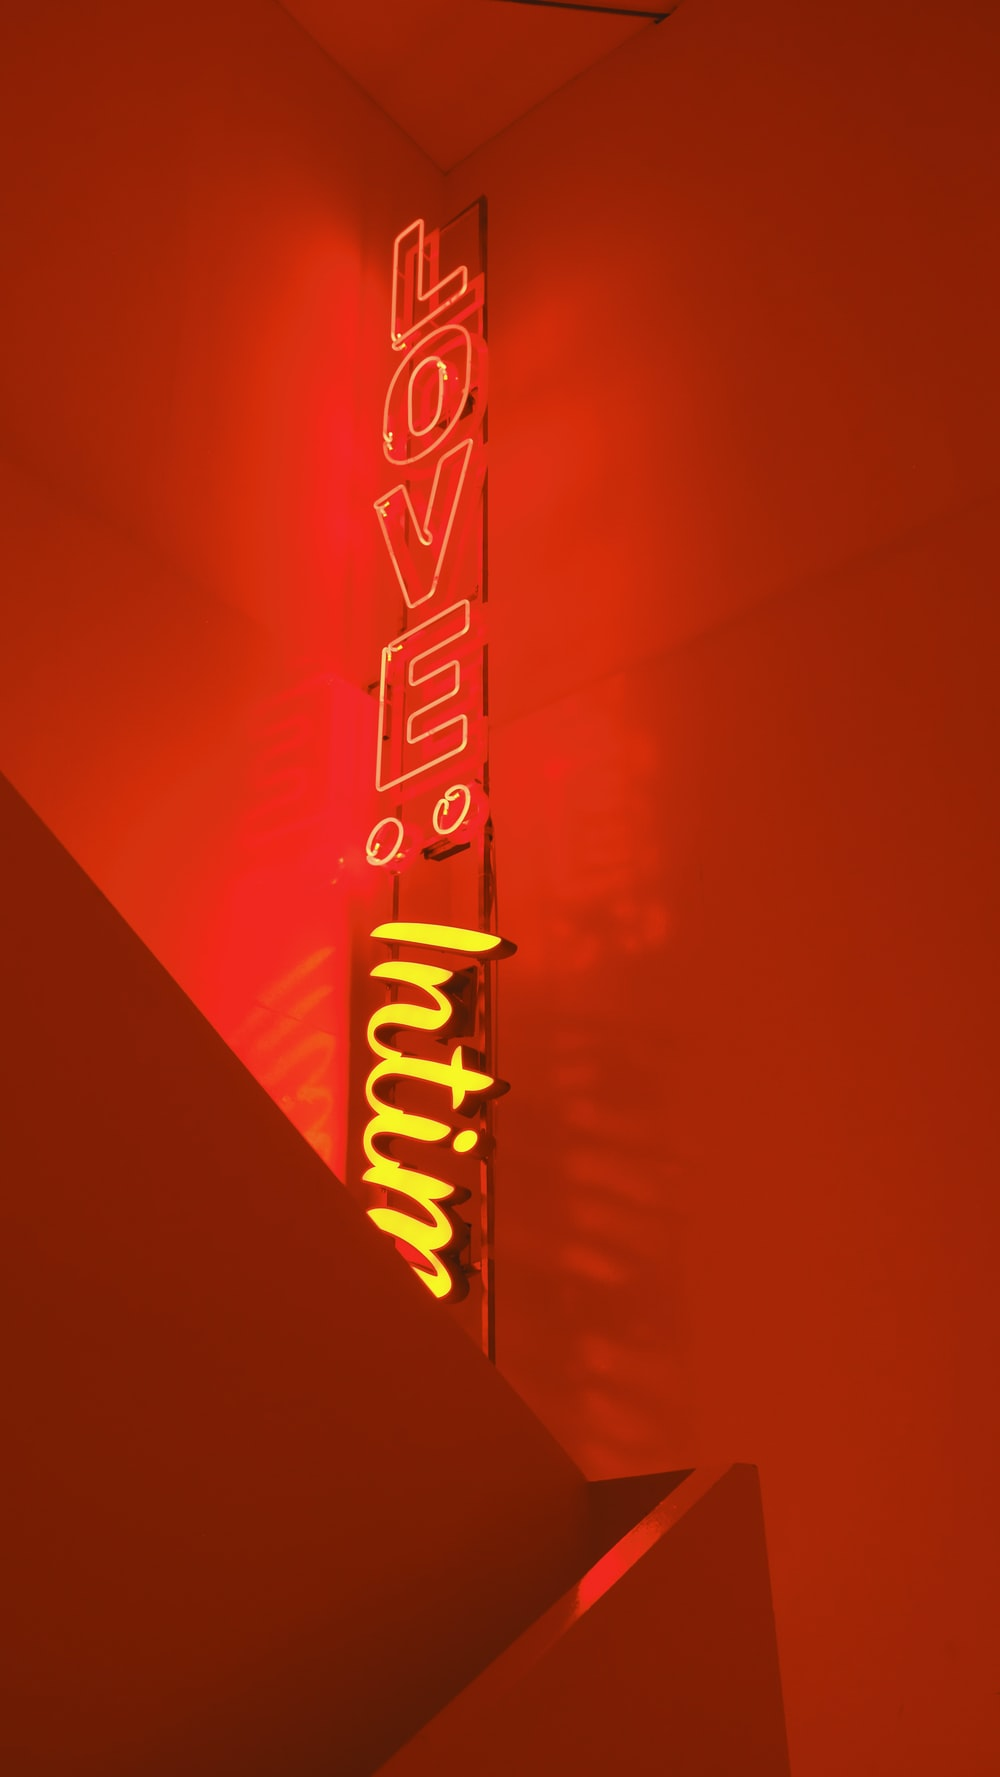 red love neon light signage